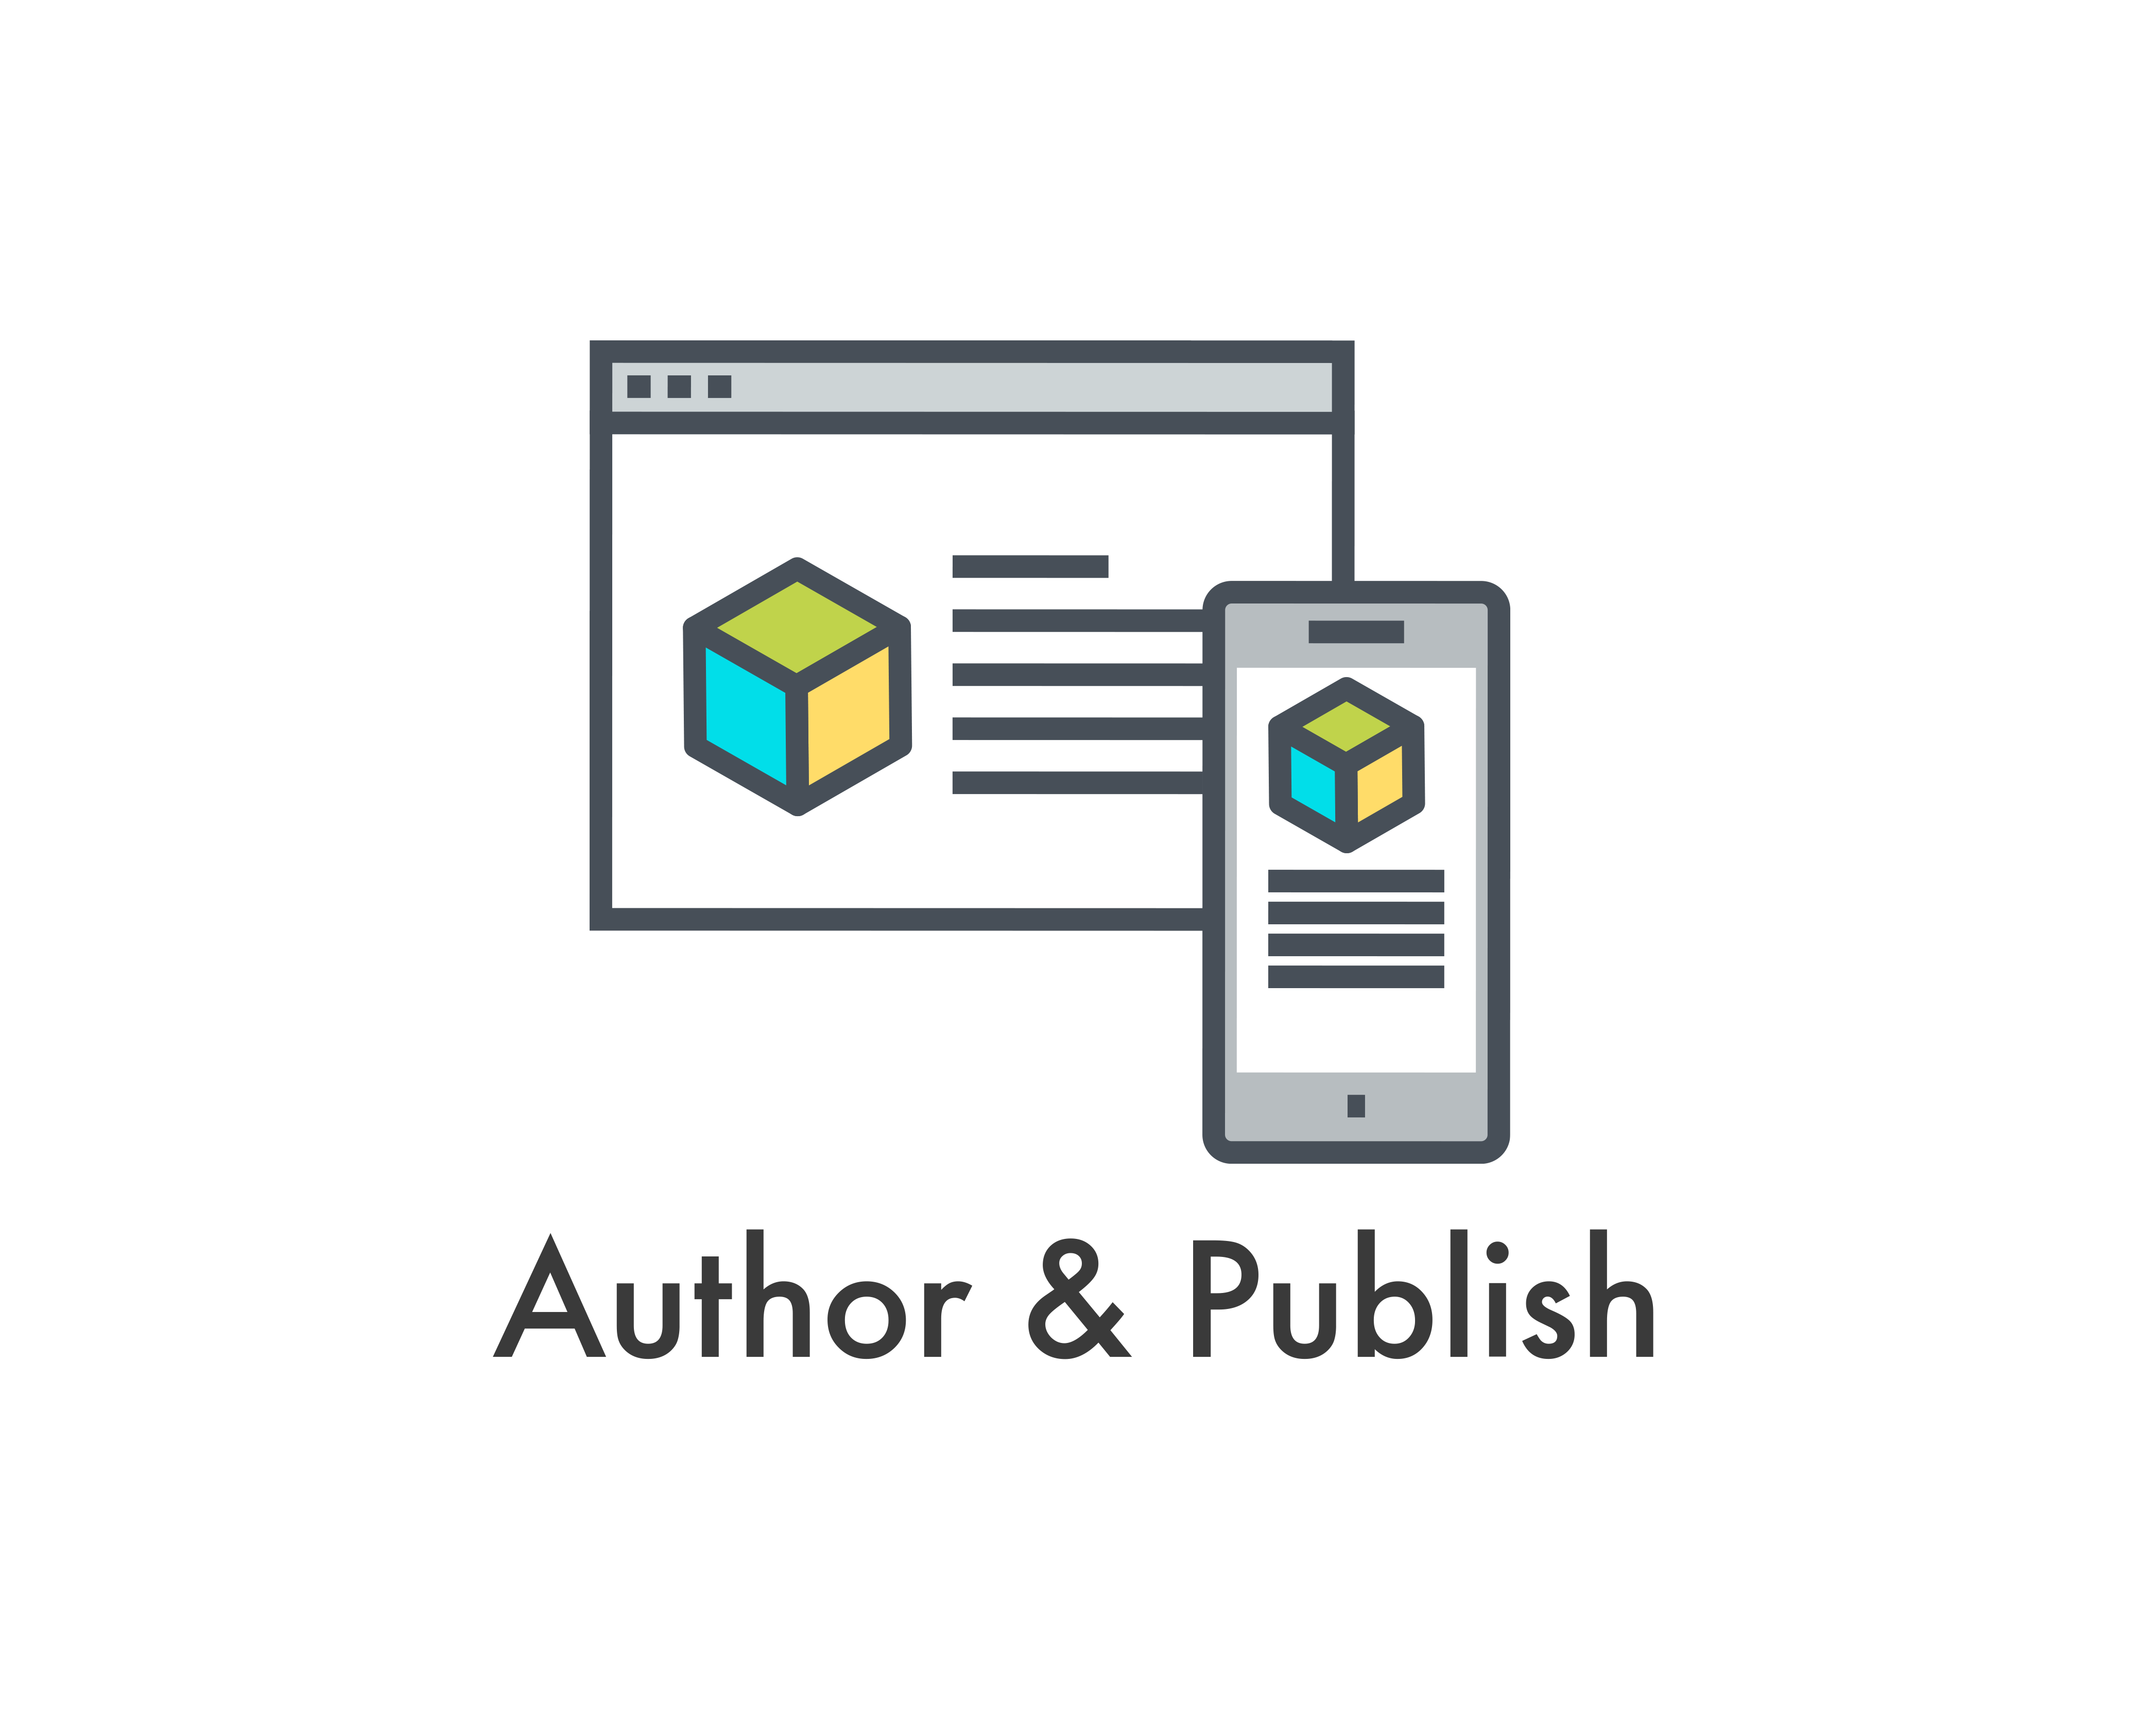 Xyleme-author-publish